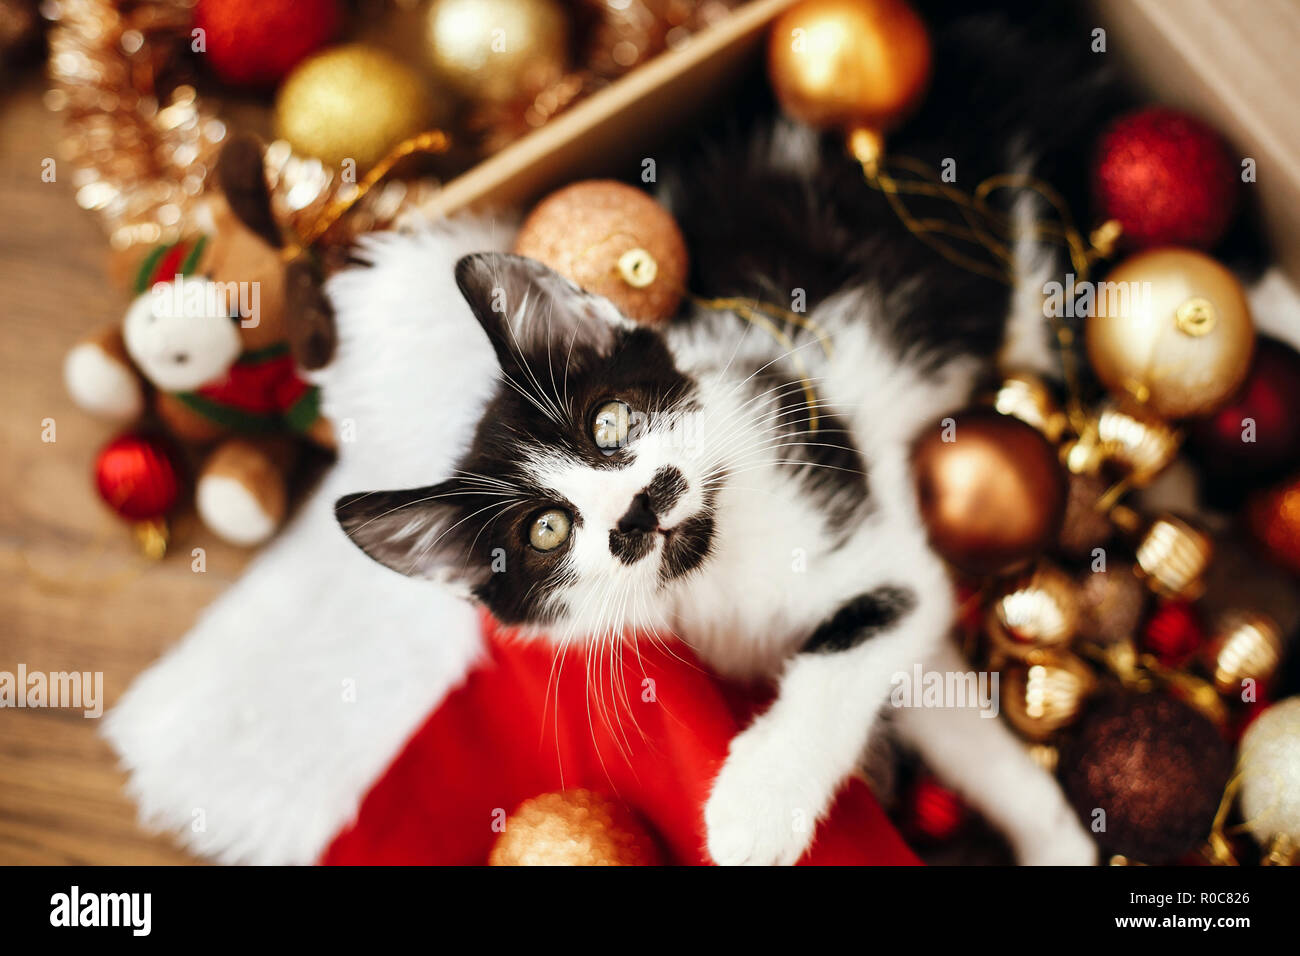 Cute kitty sitting in box with red and gold baubles, ornaments and santa hat under christmas tree in festive room. Merry Christmas concept. Adorable f Stock Photo